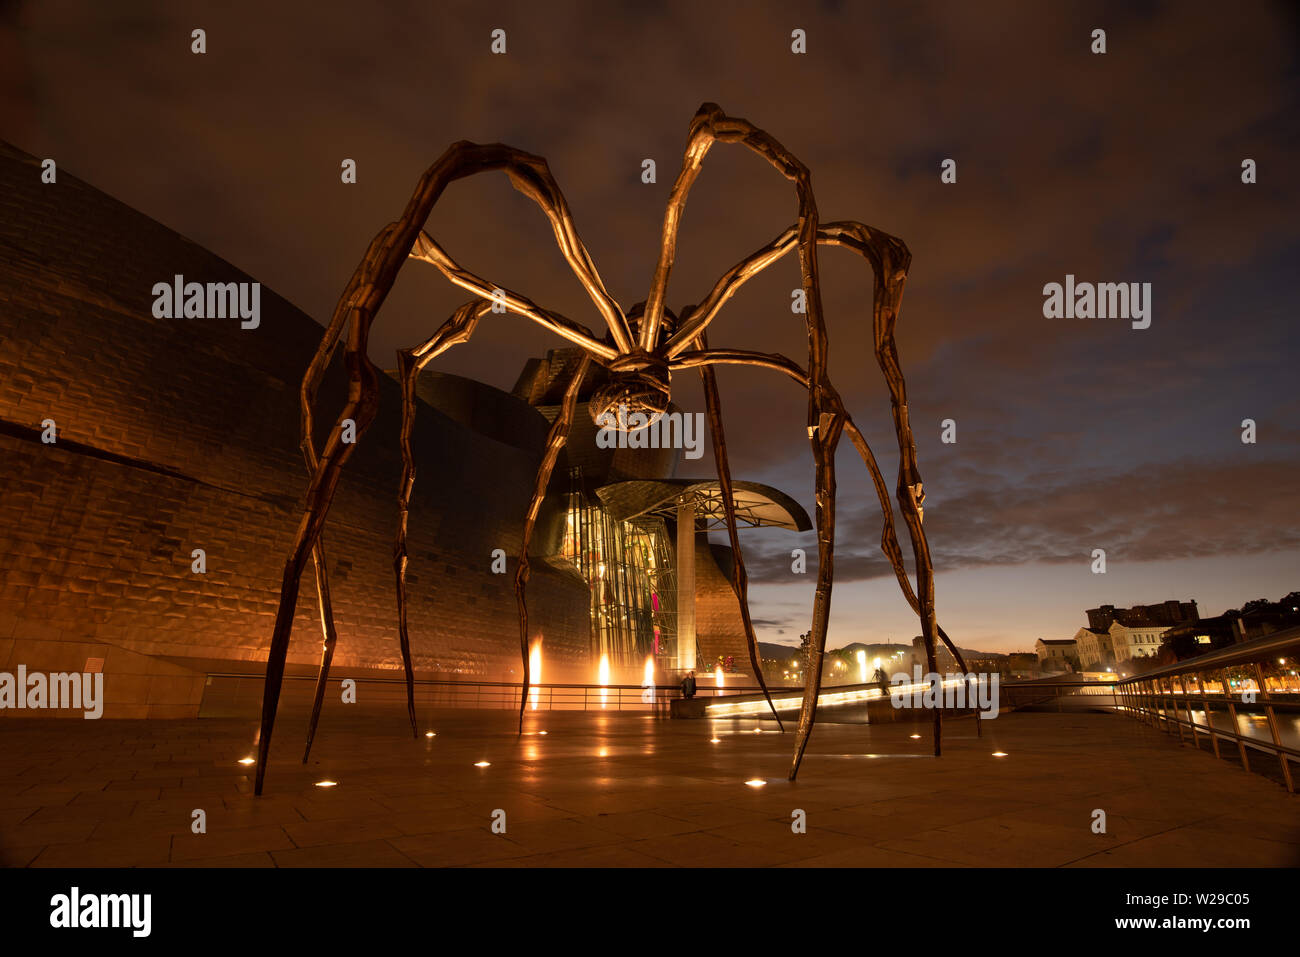 Bilbao, Spain, 16/10-18. The sculpture called Maman, by Louise Bourgeois is situated outside of the Guggenheim museum in Bilbao, Spain. Stock Photo